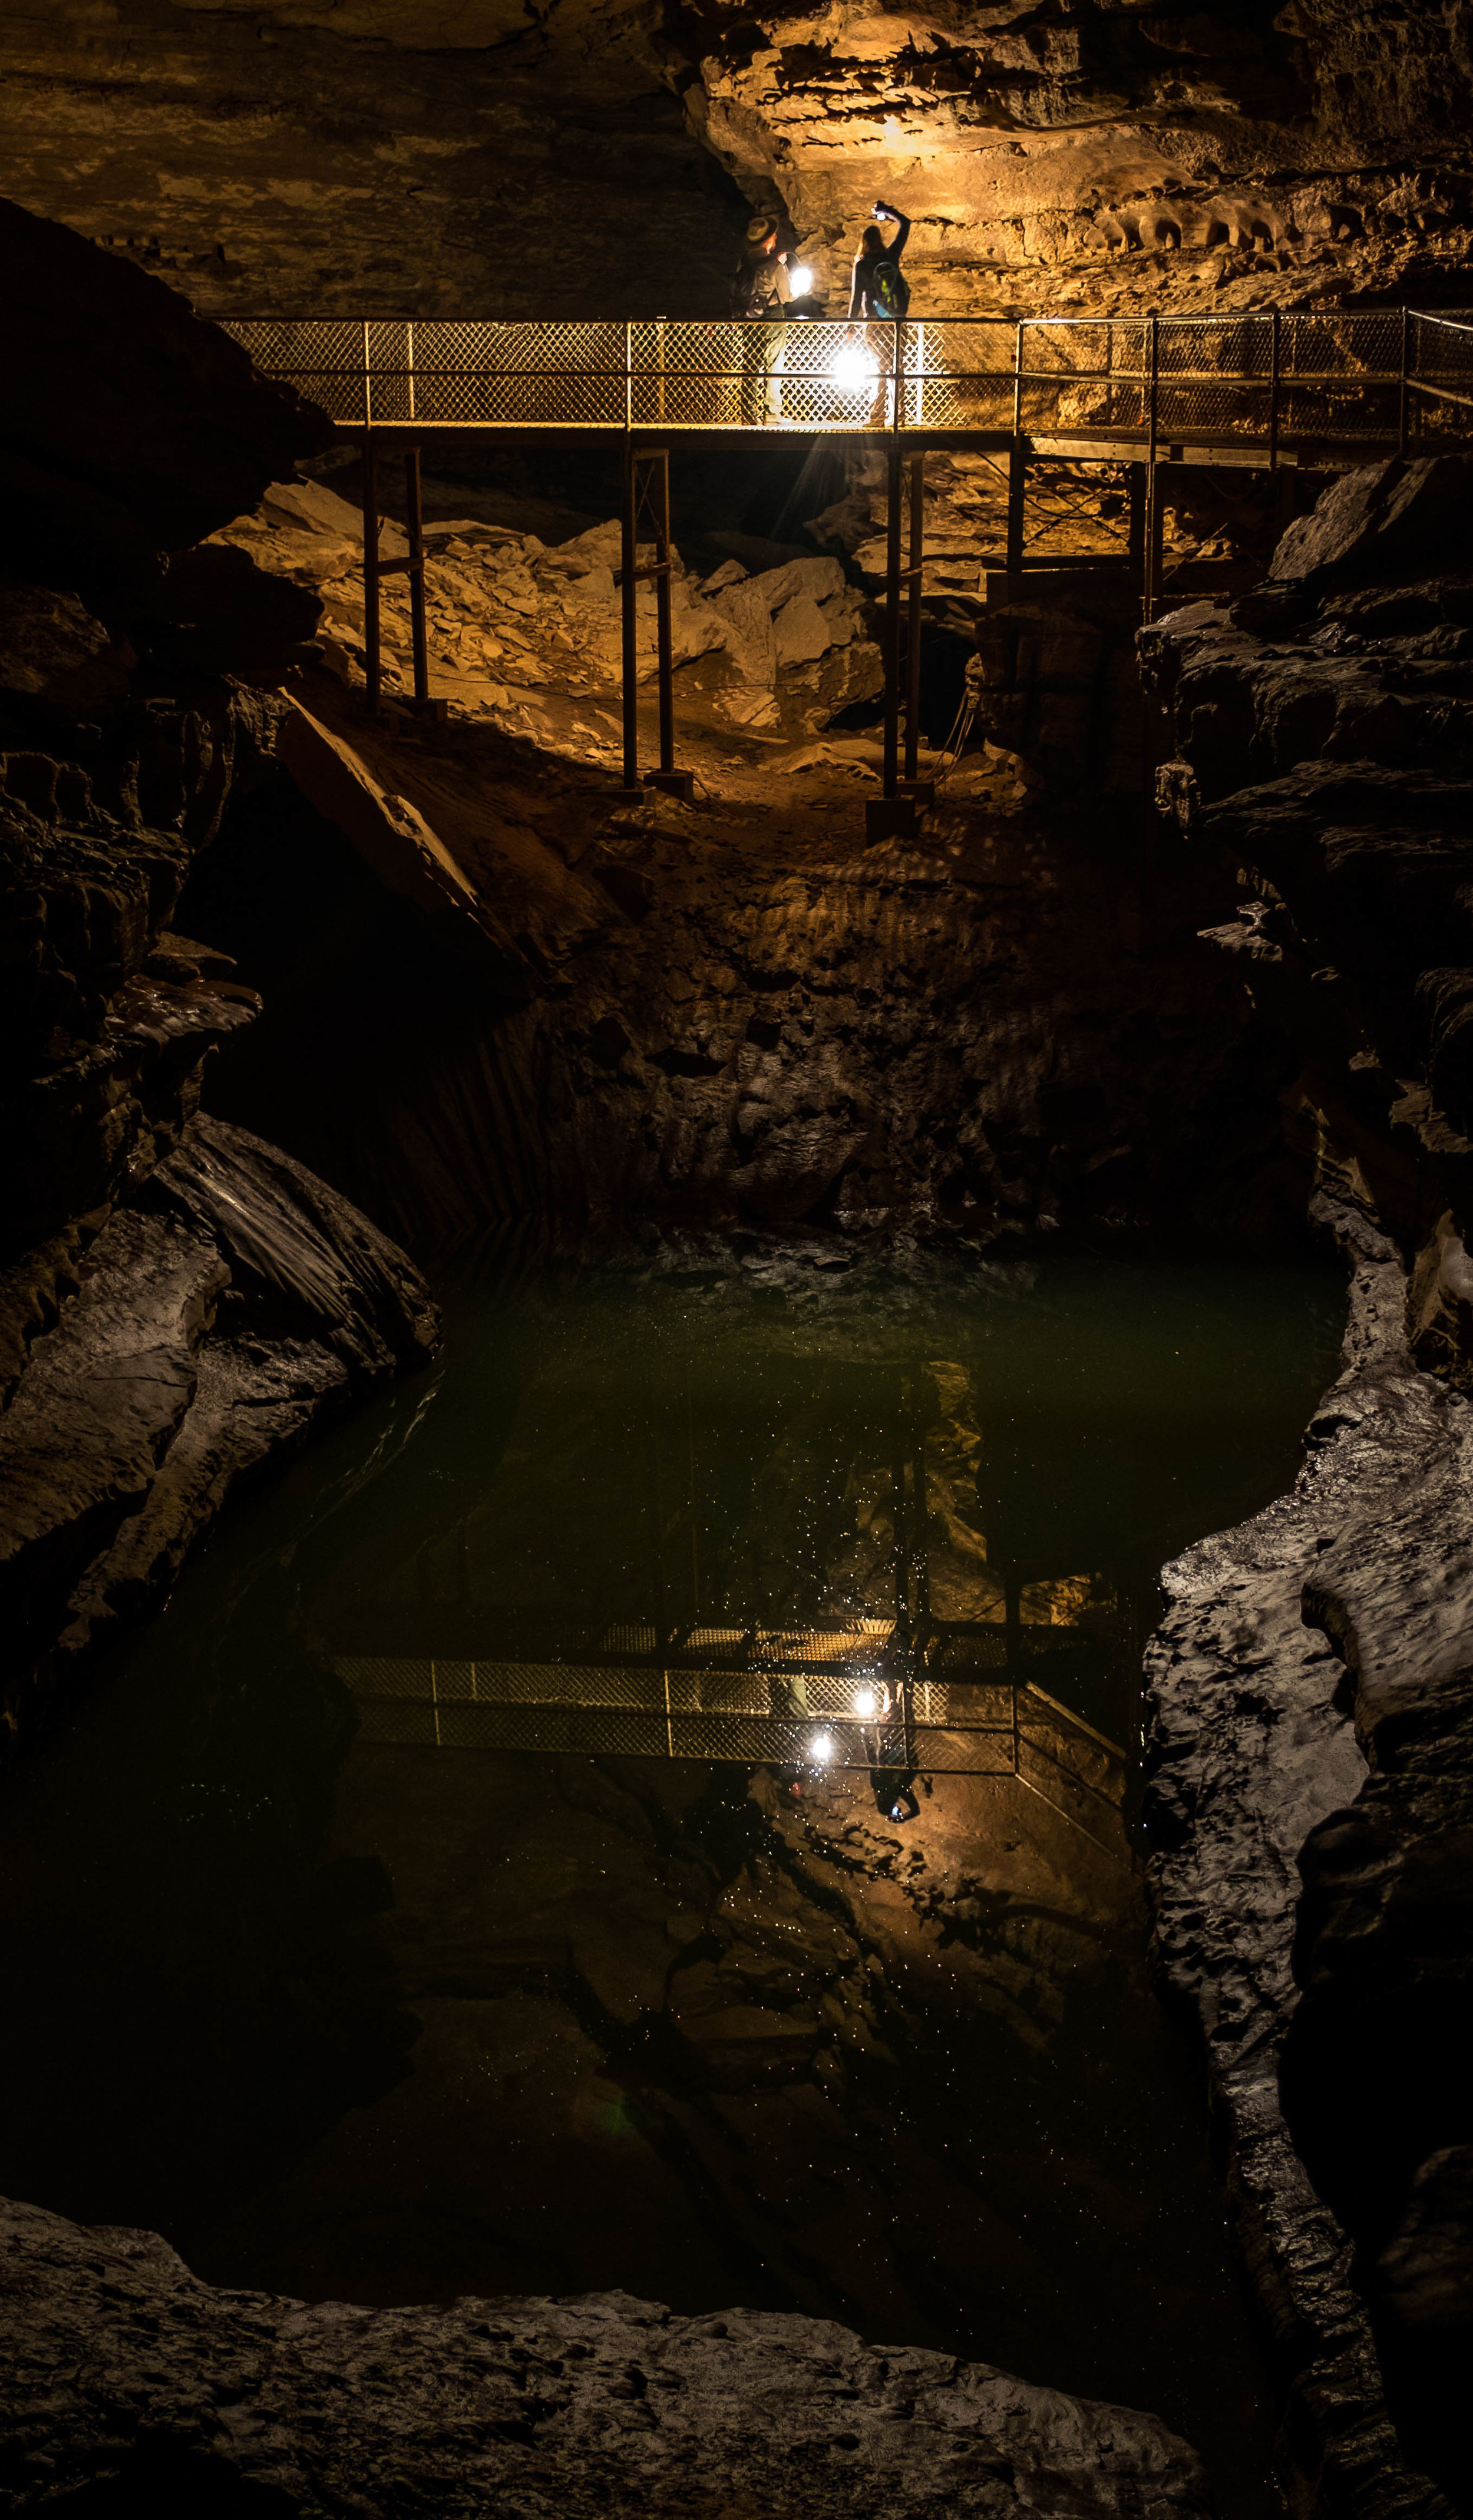 Reflections in the underground water.